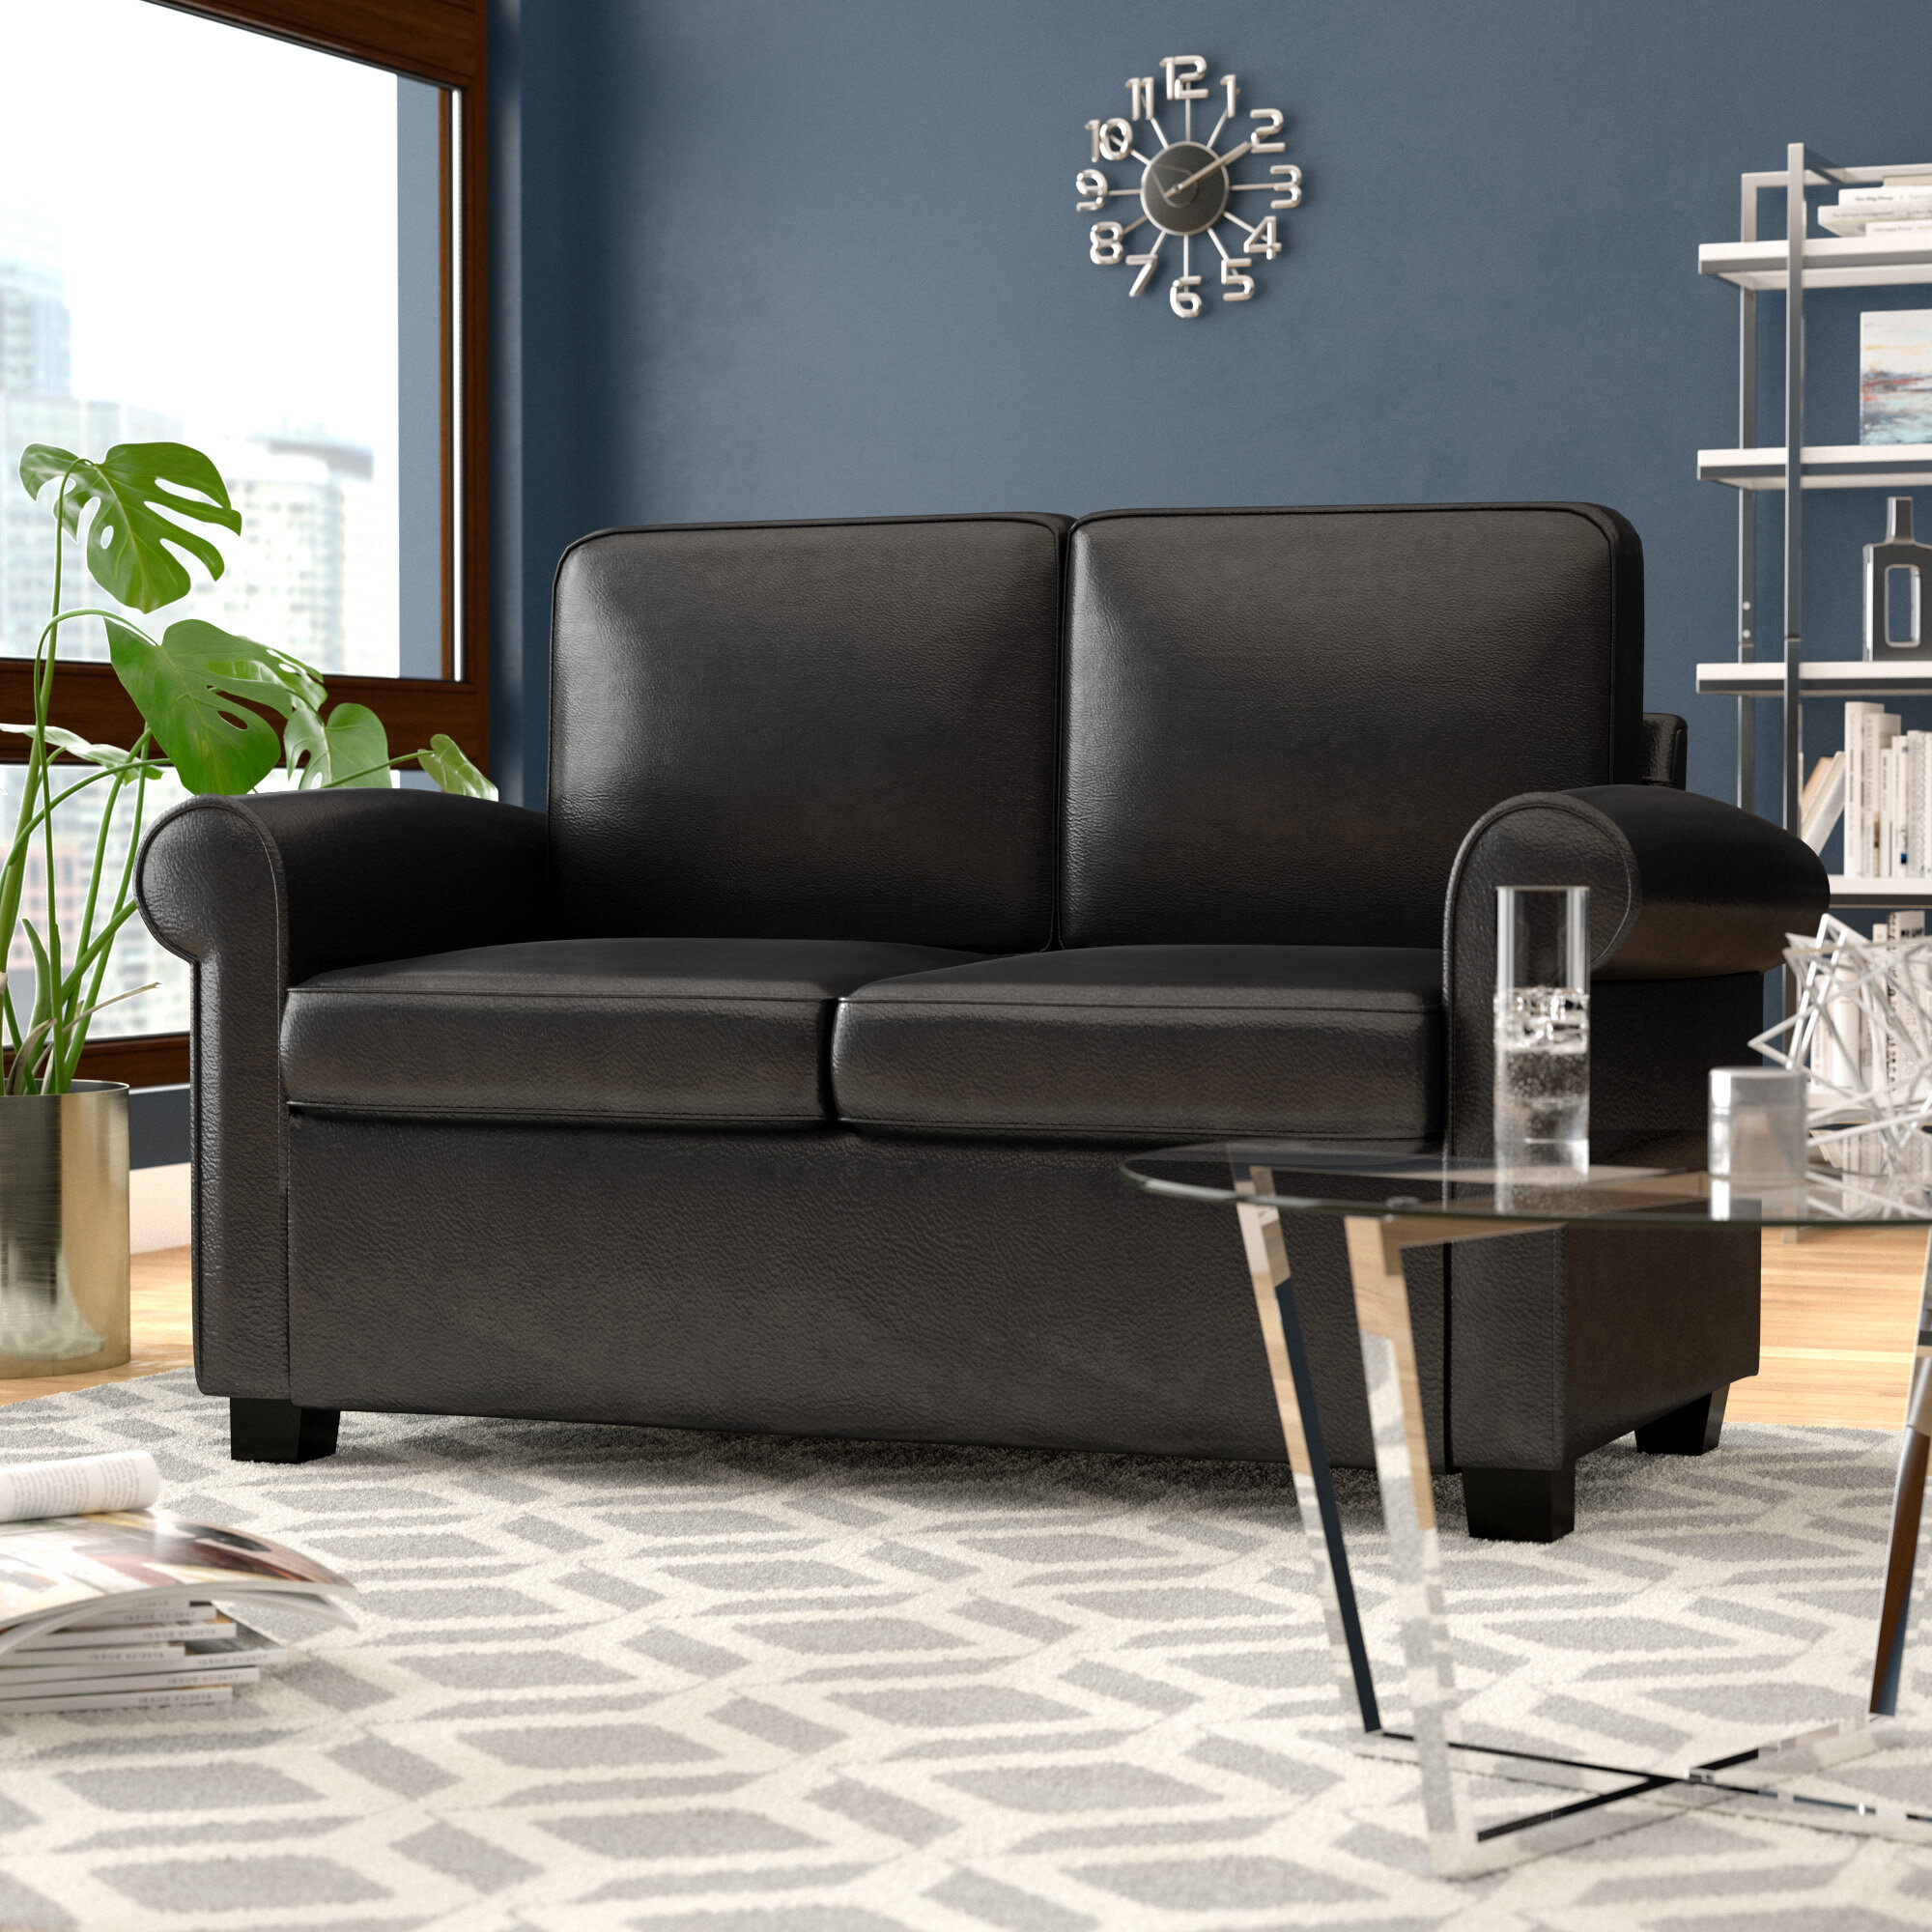 modern queen comfy best small american full ottoman size sleeper sectional black sofa leather of loveseat sofas denver with convertible bed